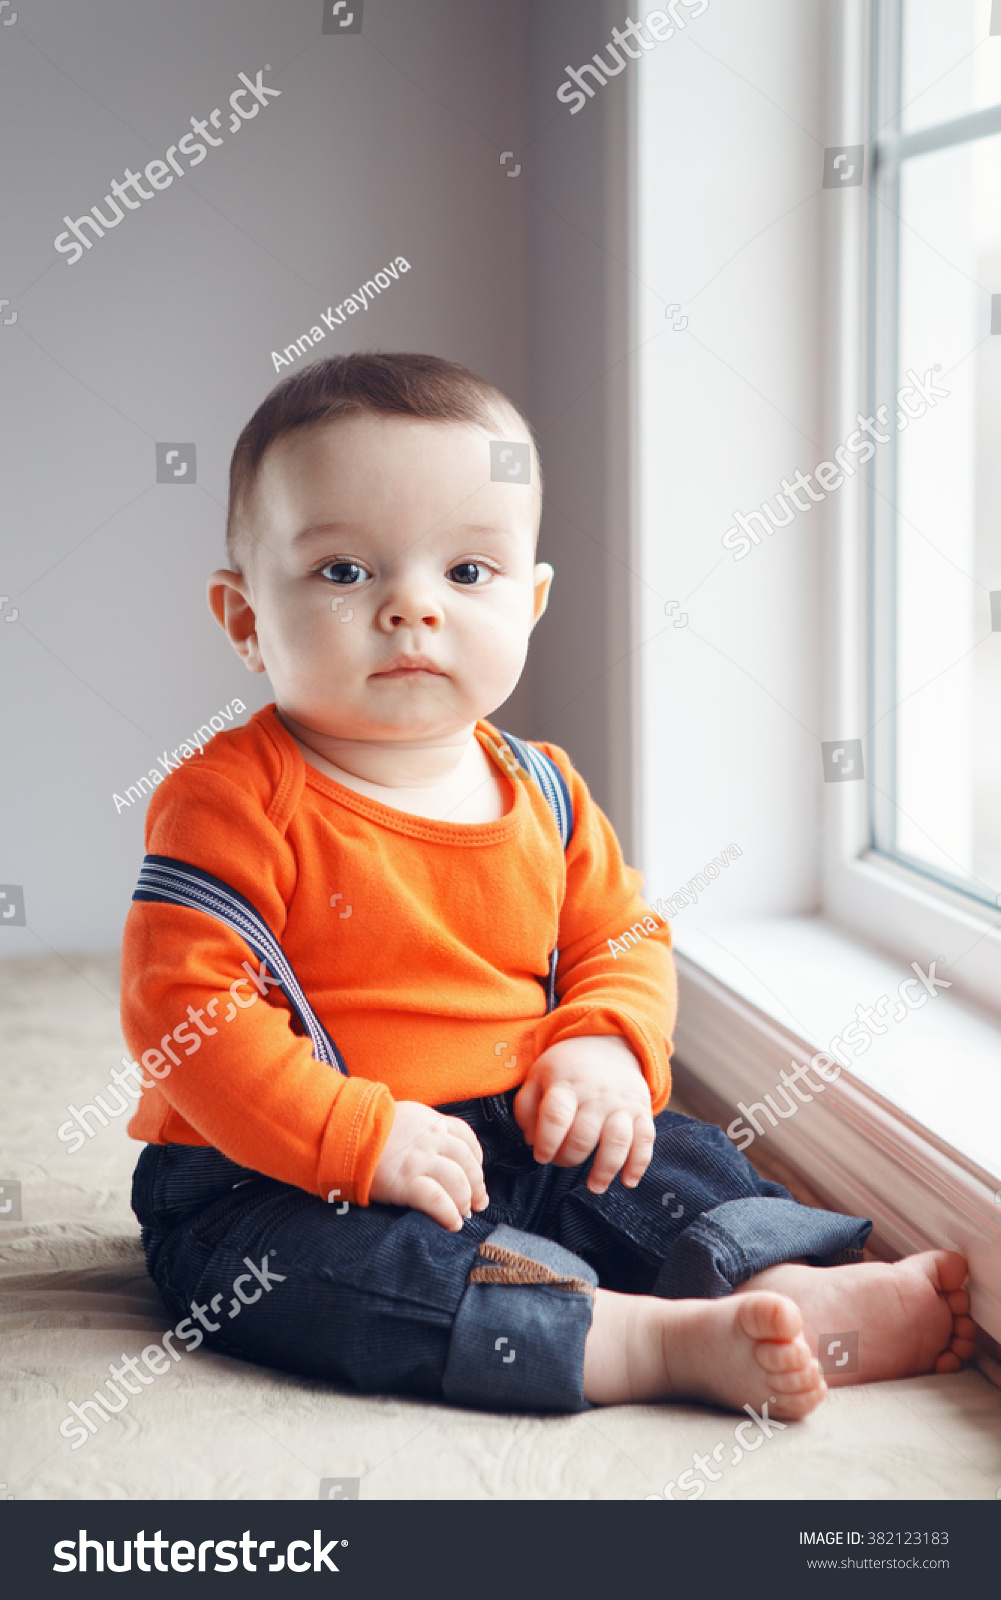 9ecdf0127aae Portrait of cute adorable stylish Caucasian baby boy with black eyes in  orange red shirt onesie